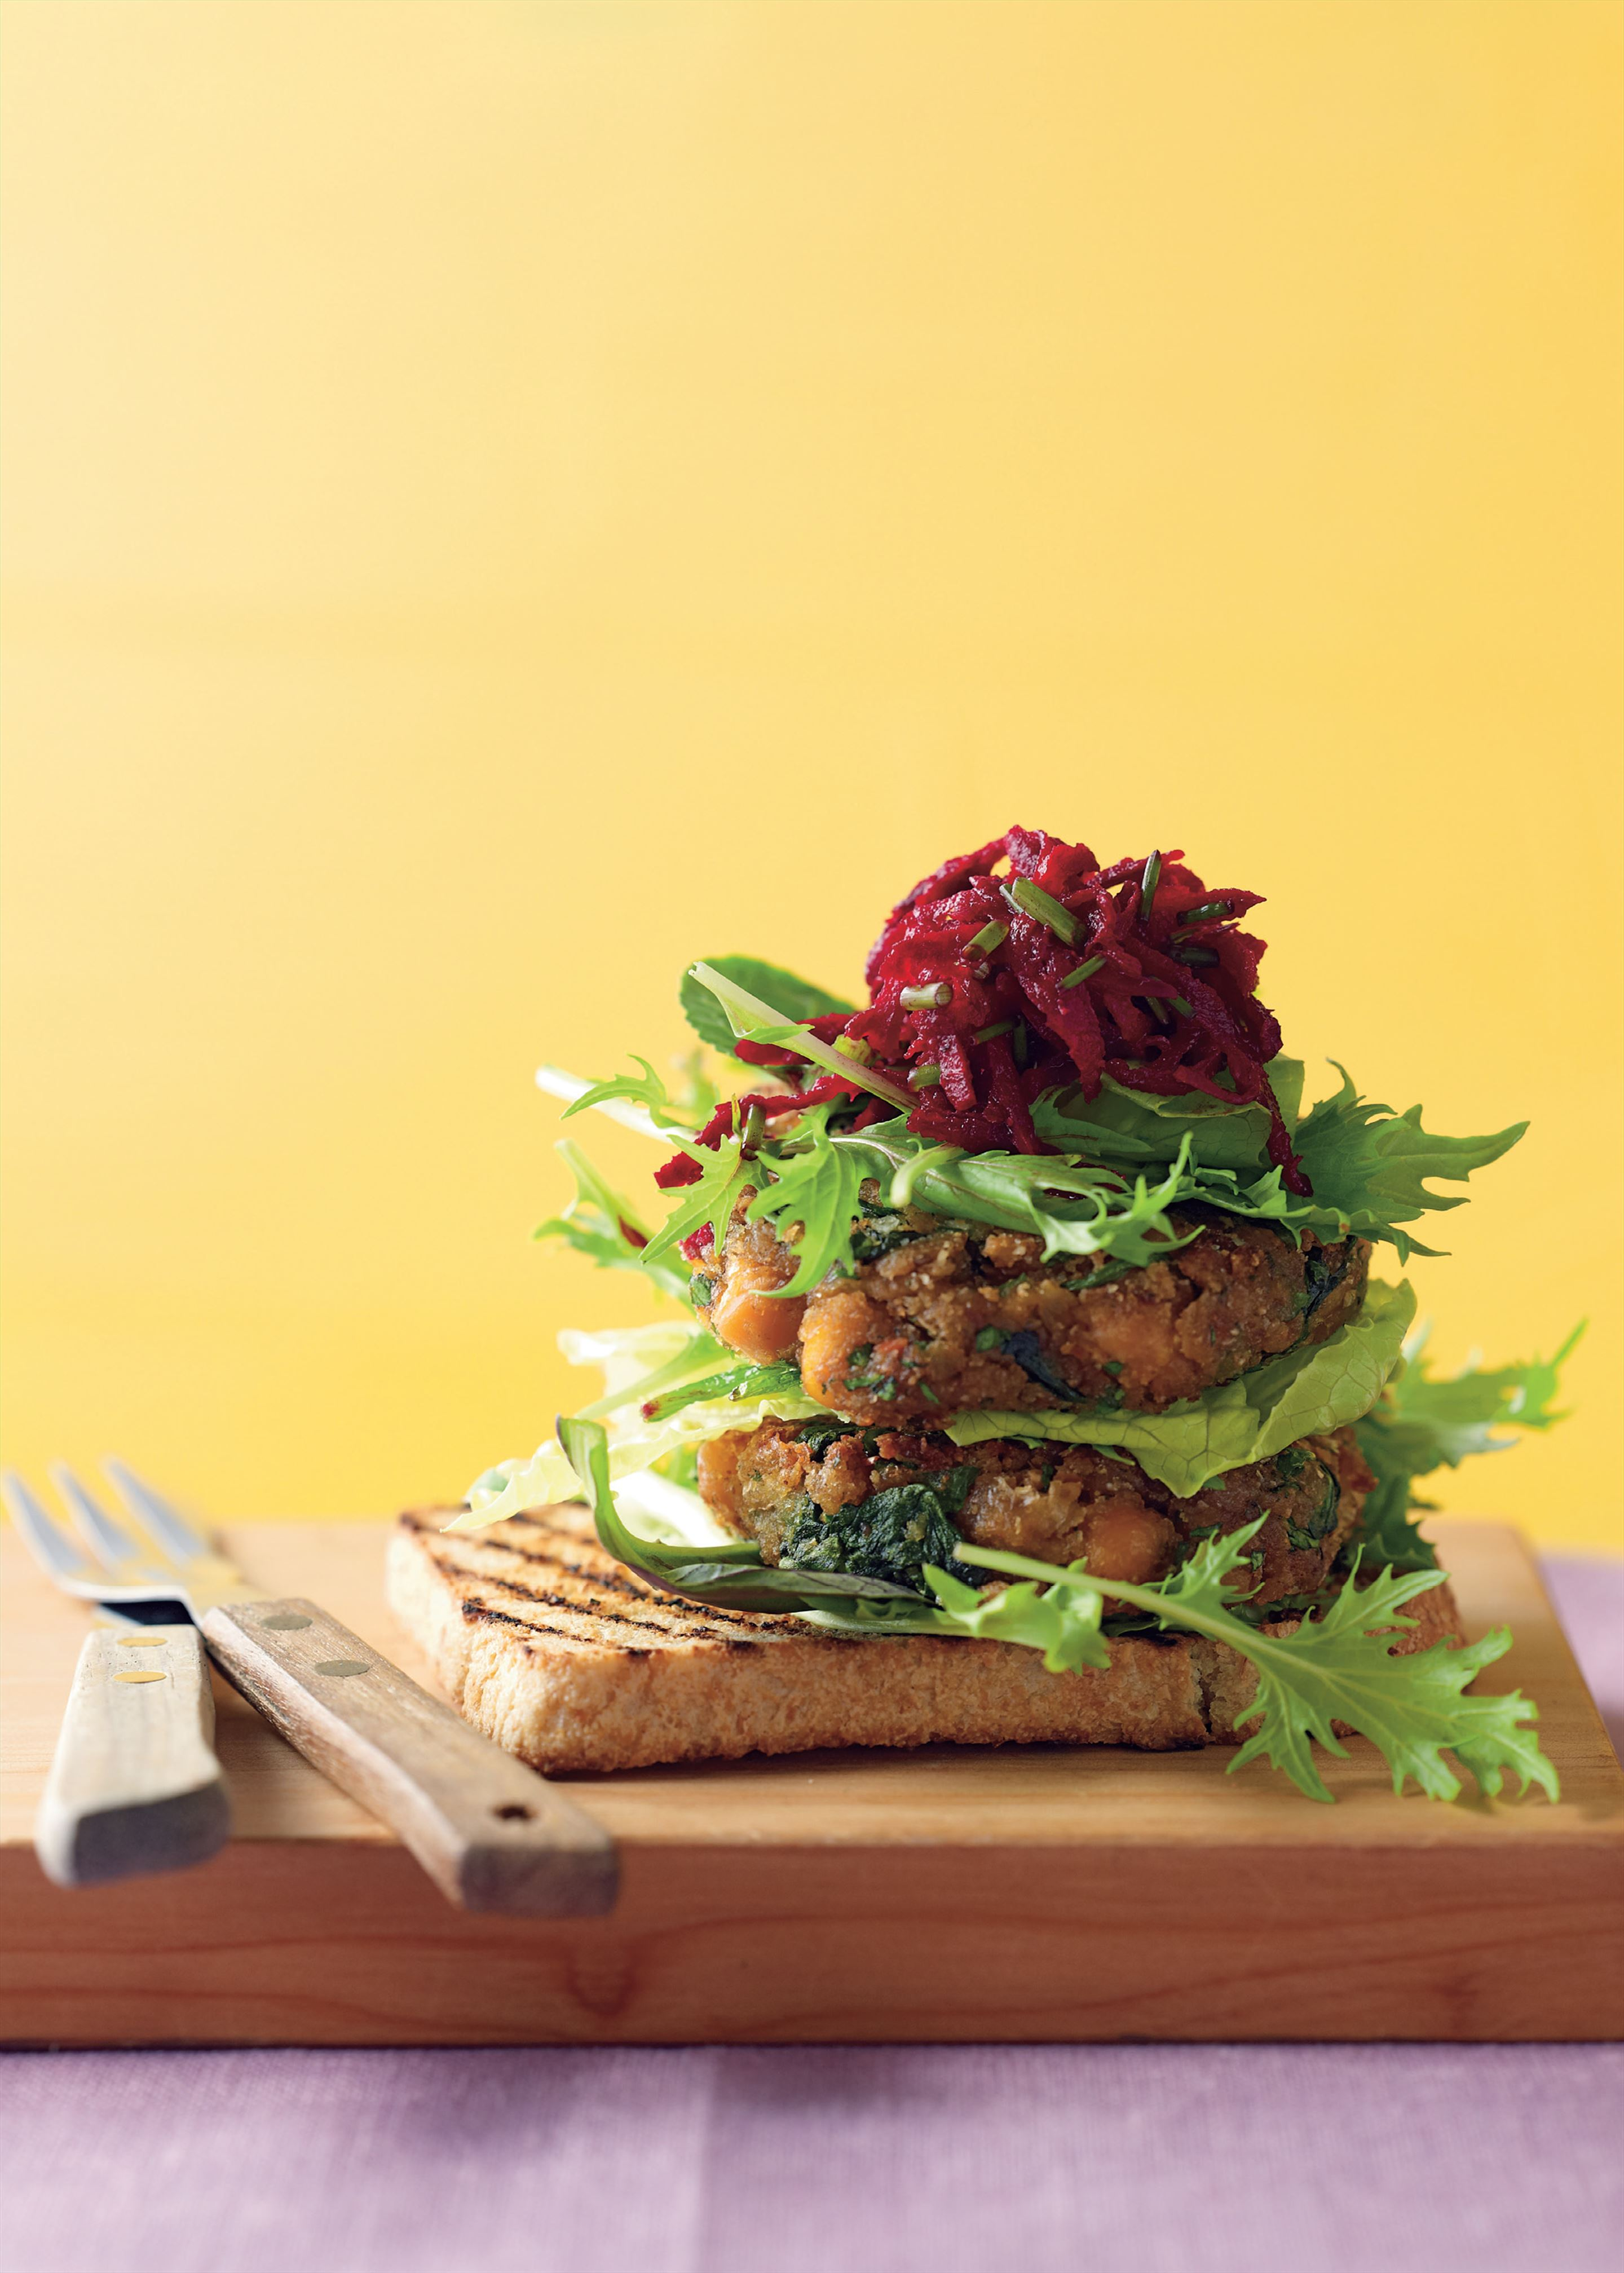 Spiced chickpea burgers with fresh beetroot salsa and salad